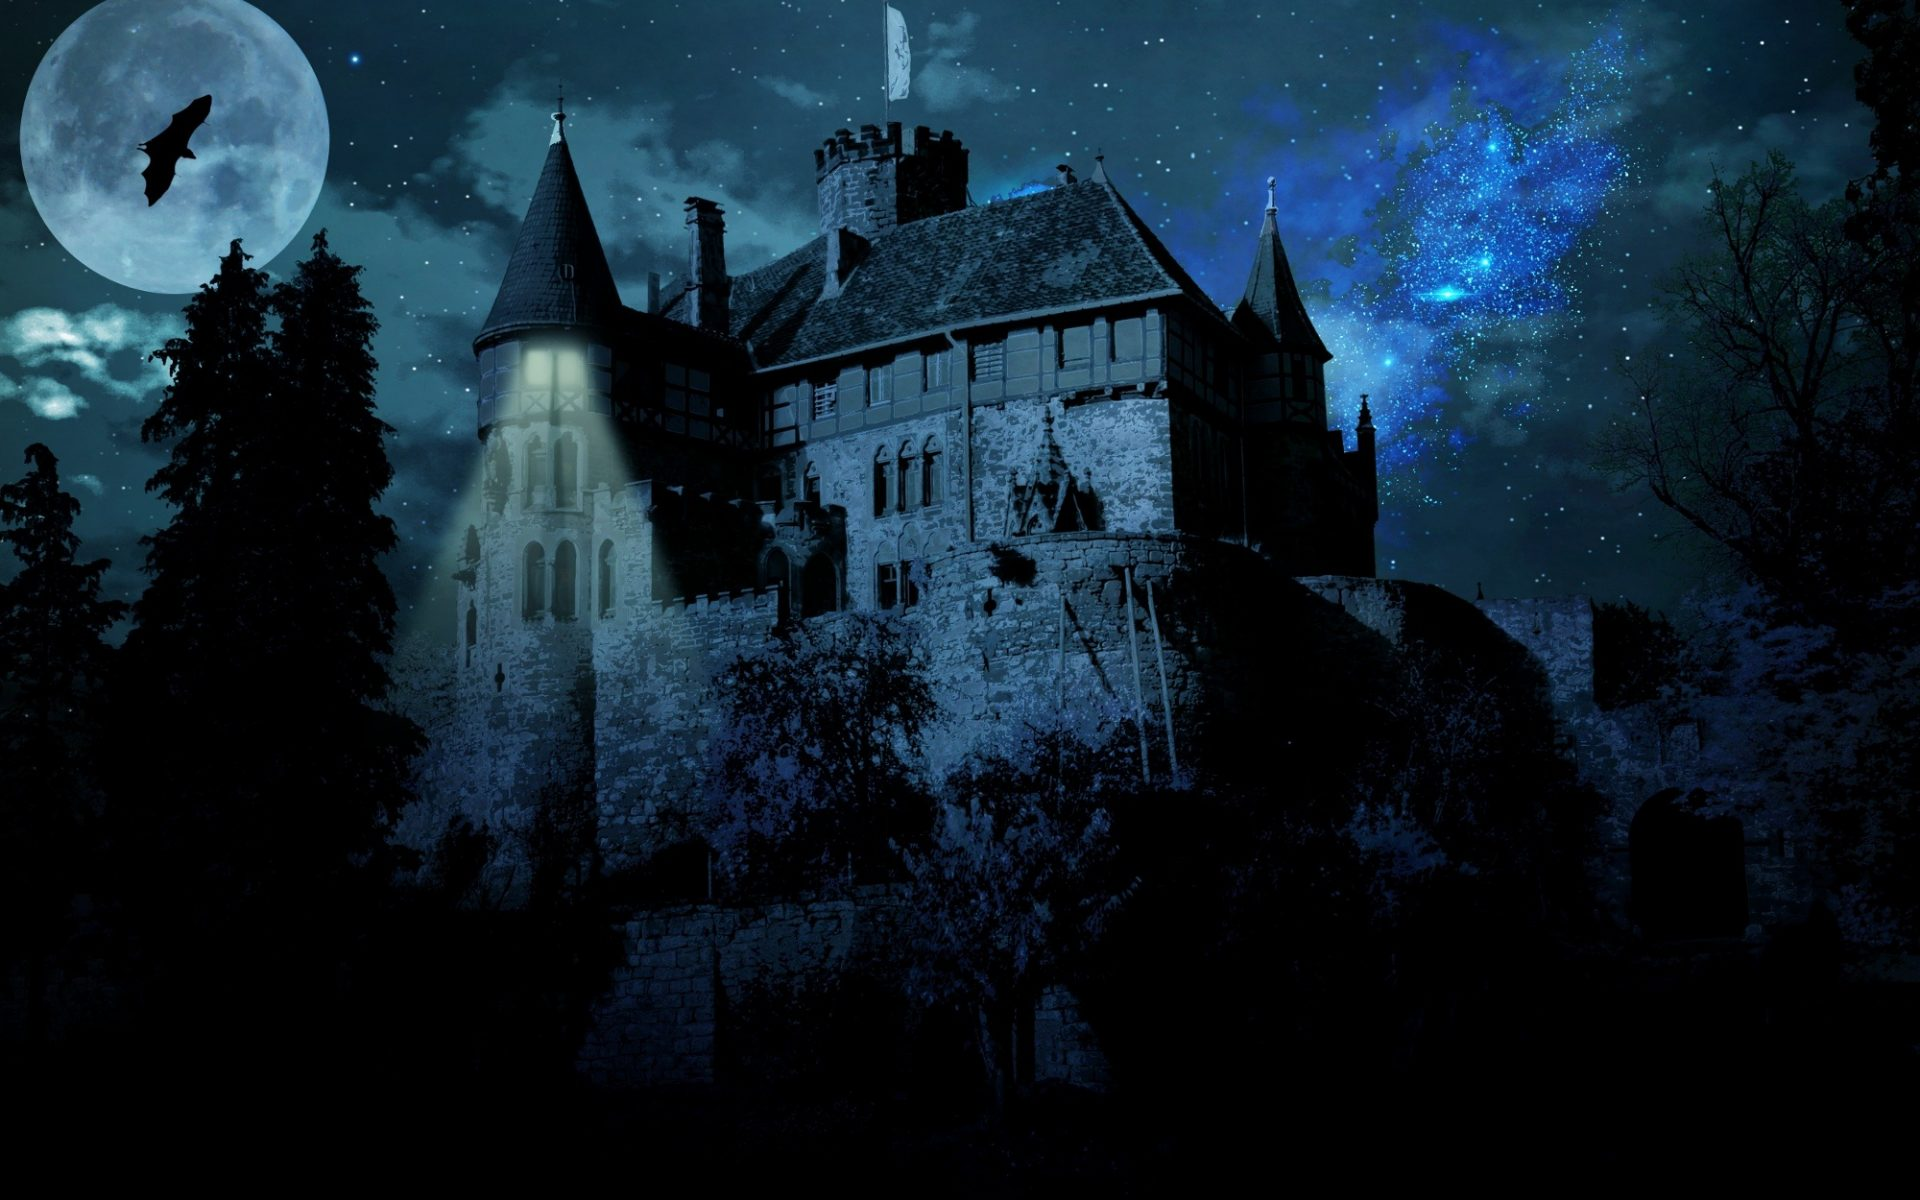 1920x1280 Wallpaper Cars A Haunted Castle On A Full Moon Night Hd Wallpaper